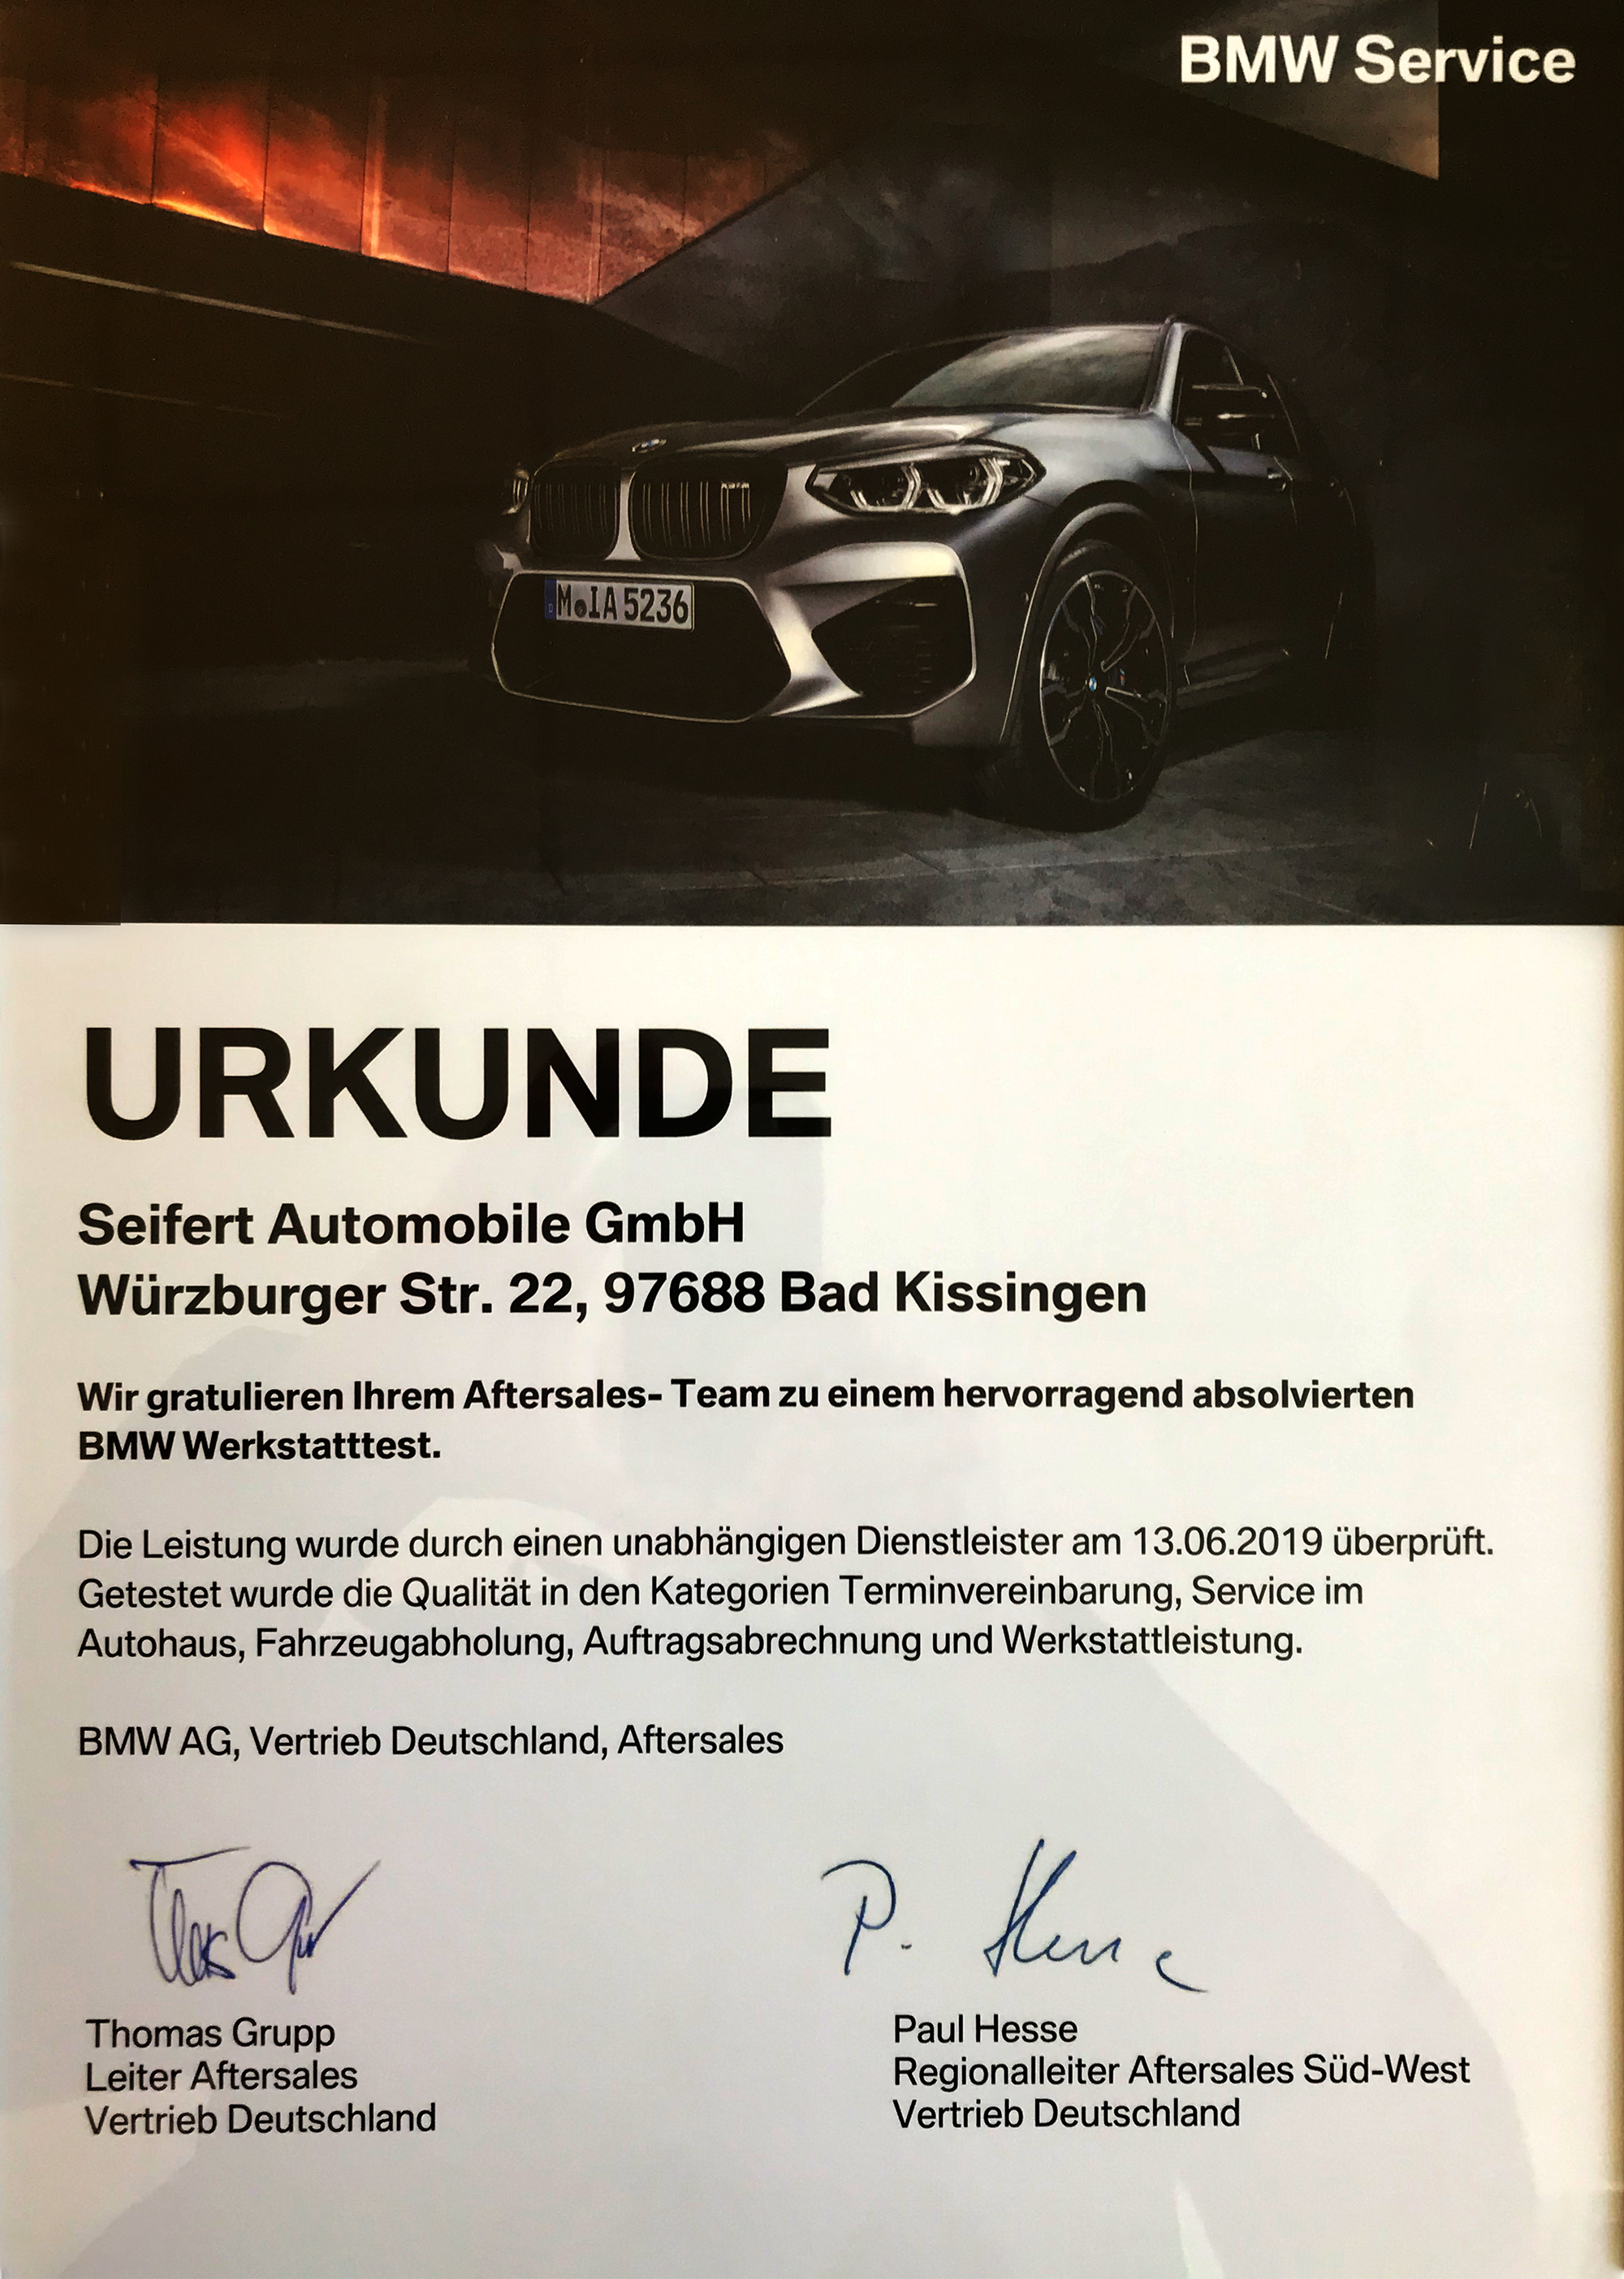 Urkunde BMW Seifert Automobile